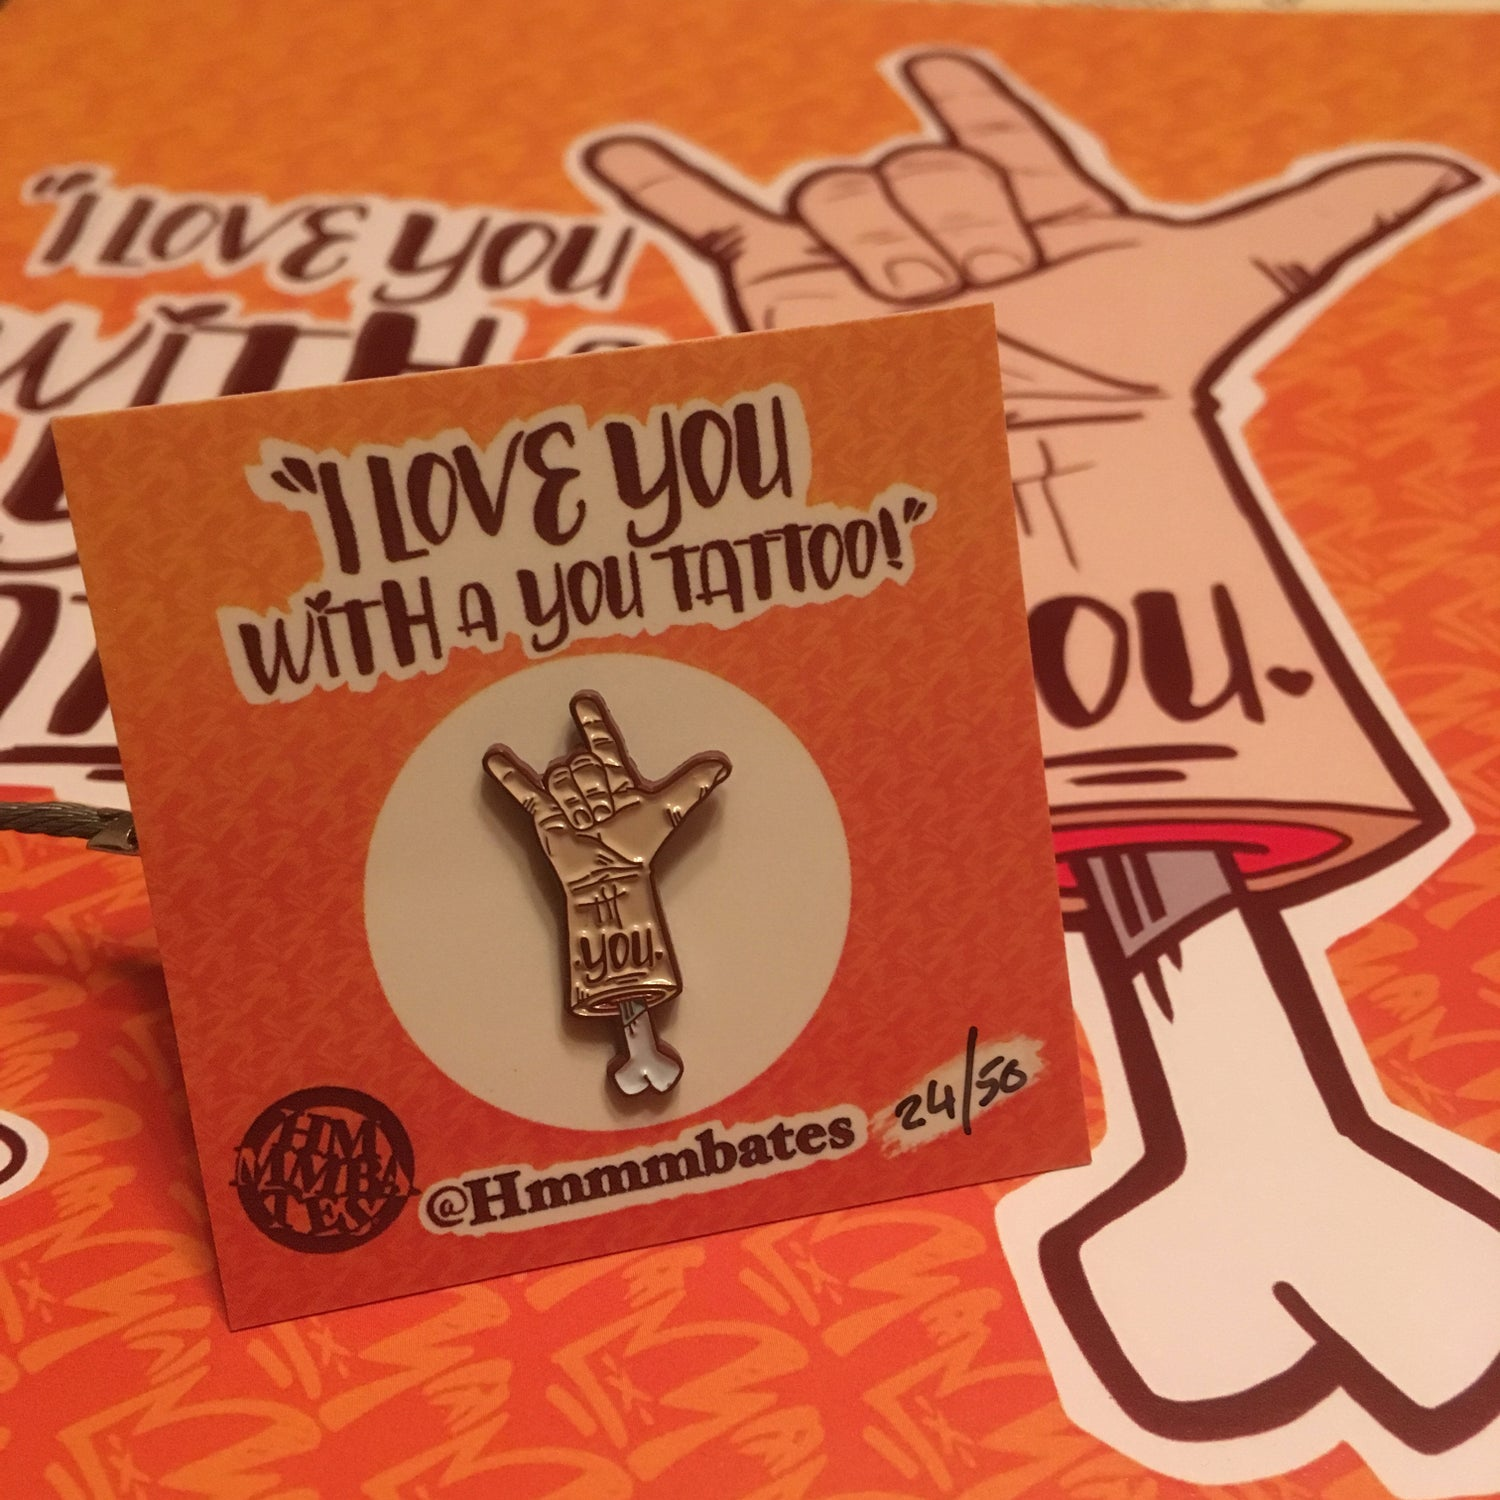 Image of I love you with a you tattoo enamel pin